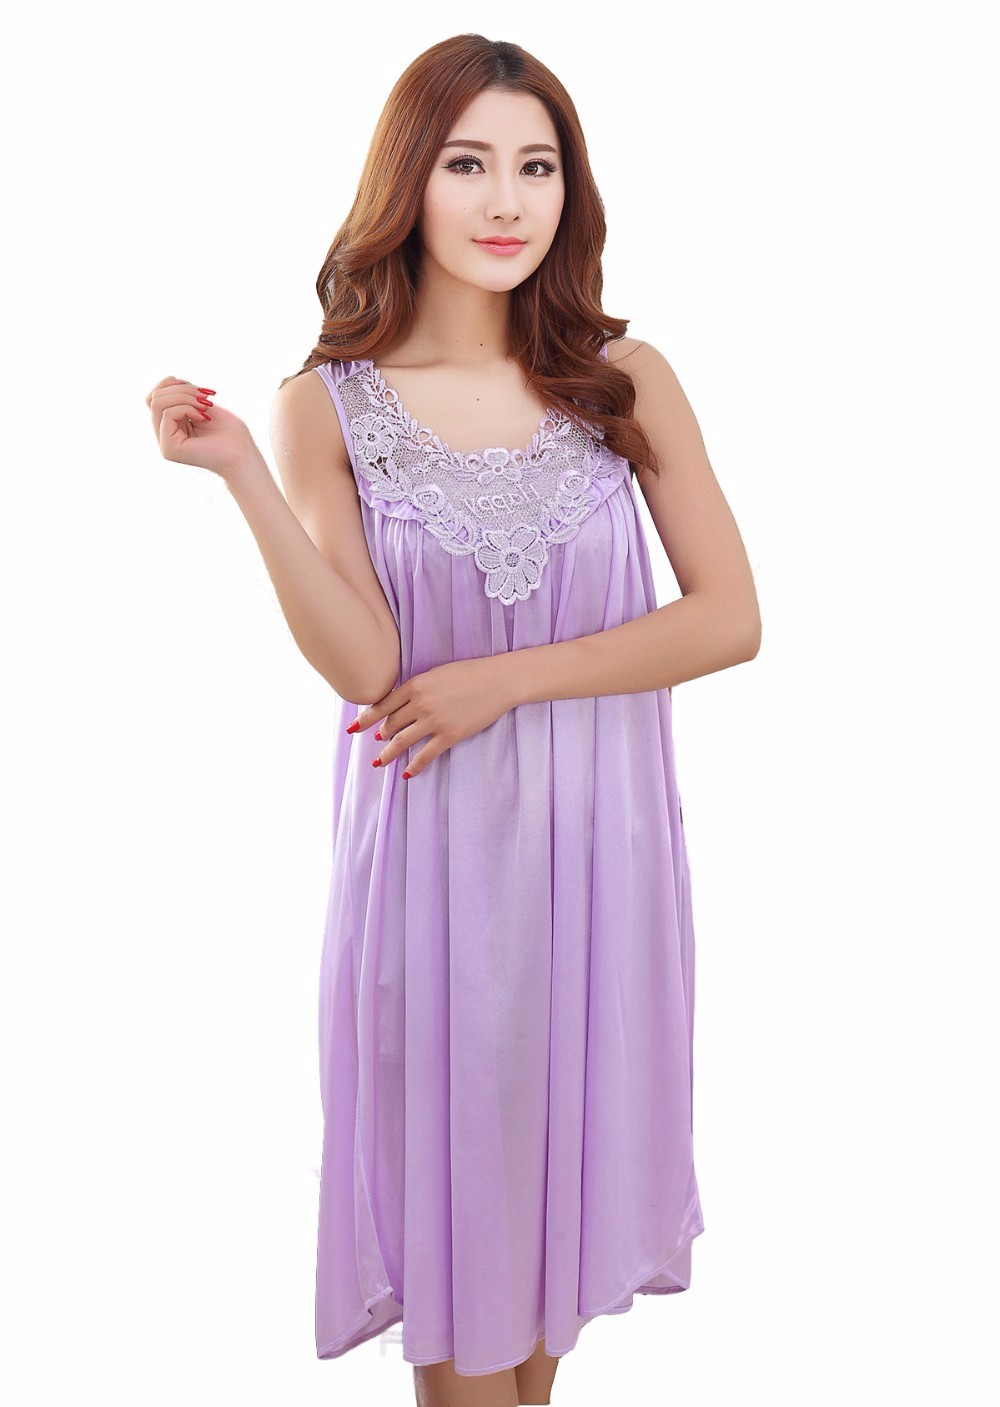 ad56e8f08 ... long silk nightgowns nightdress dress for women plus size ladies  lingerie maternity sleepwear dresses pregnant nightwear